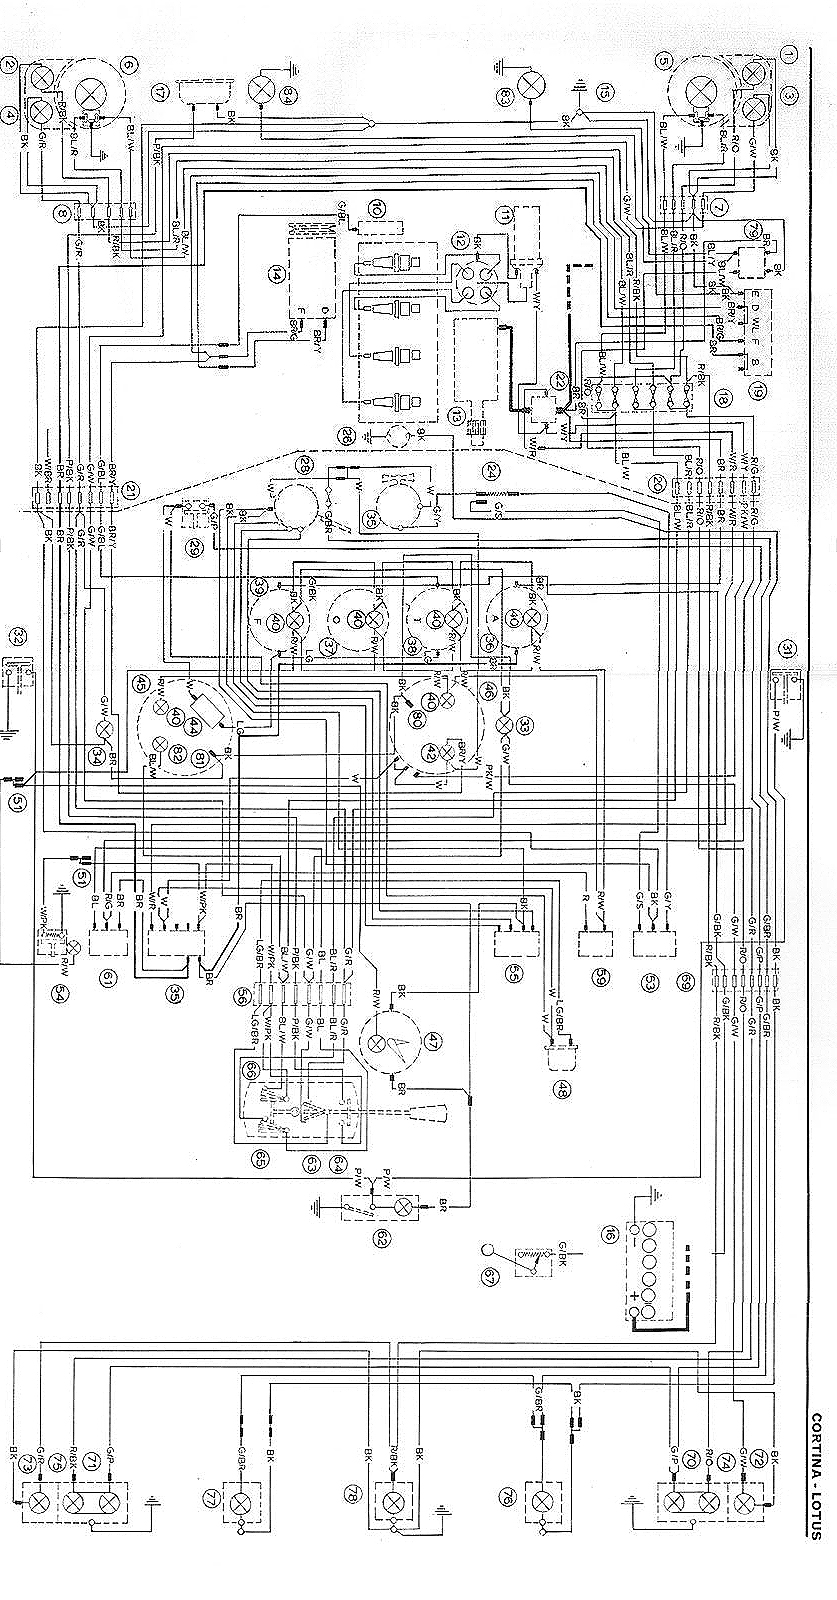 Ford Zx2 Engine Schematic Automotive Wiring Diagram 2003 Escort Library Rh 63 Dreamnode Online 2007